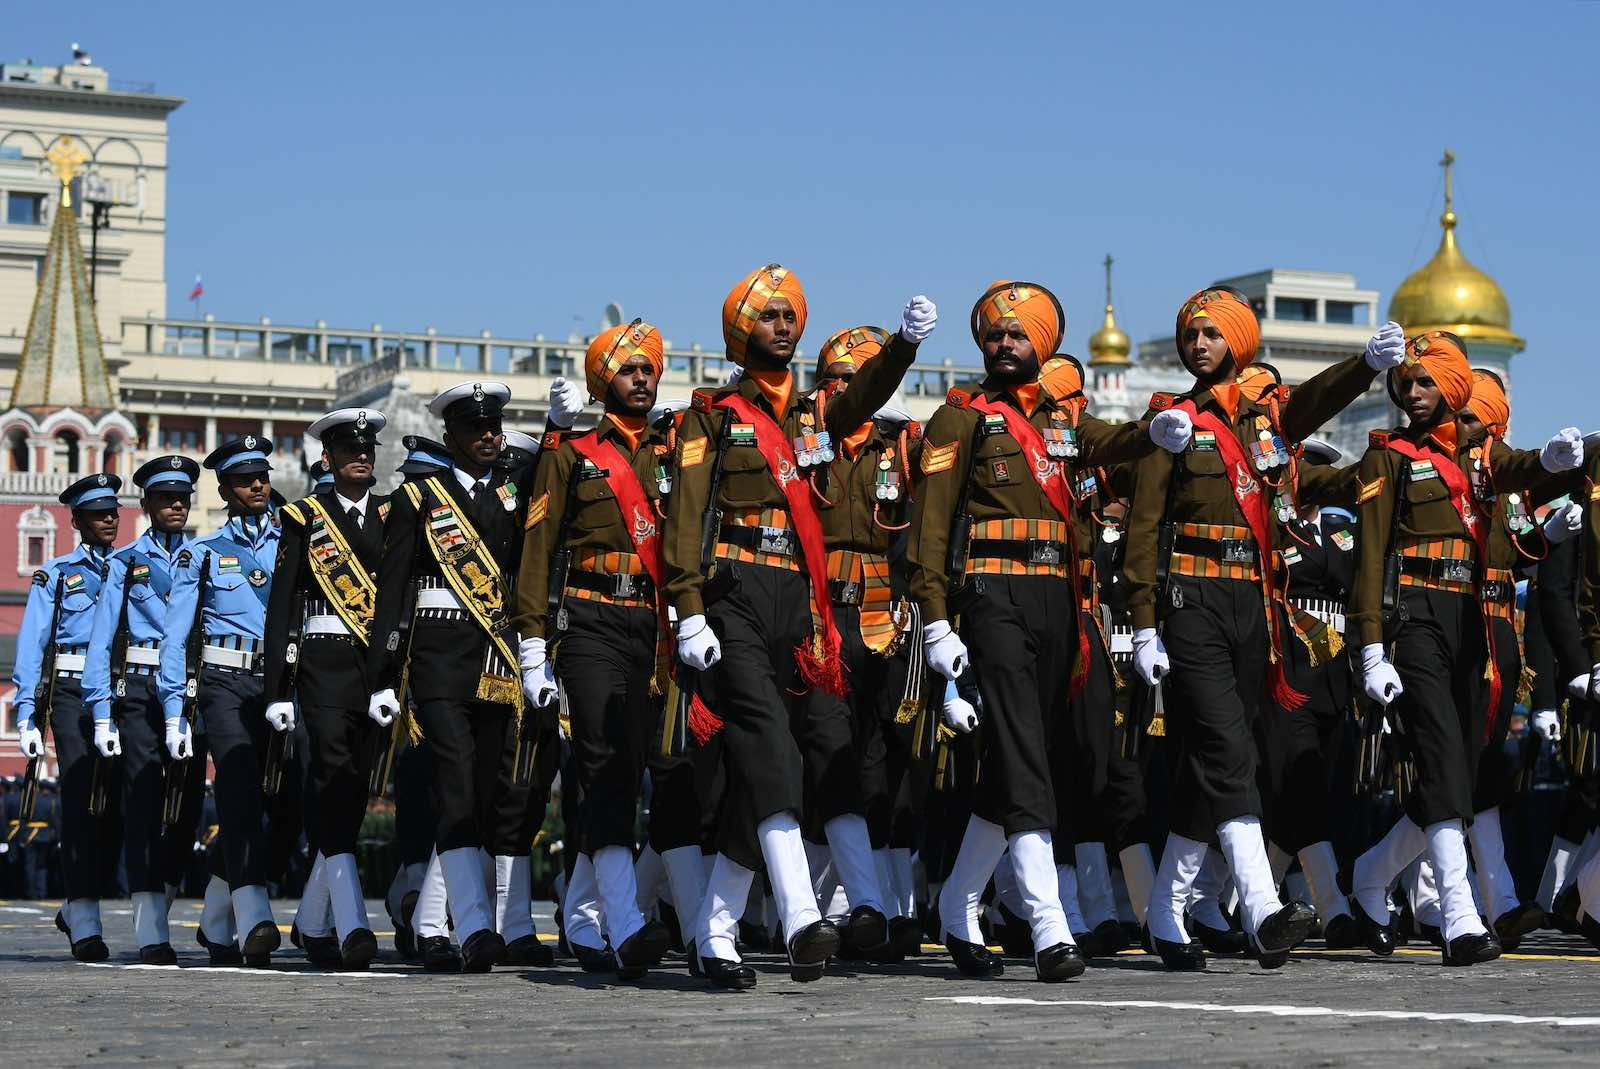 India Must Be Realistic About Russia Relations